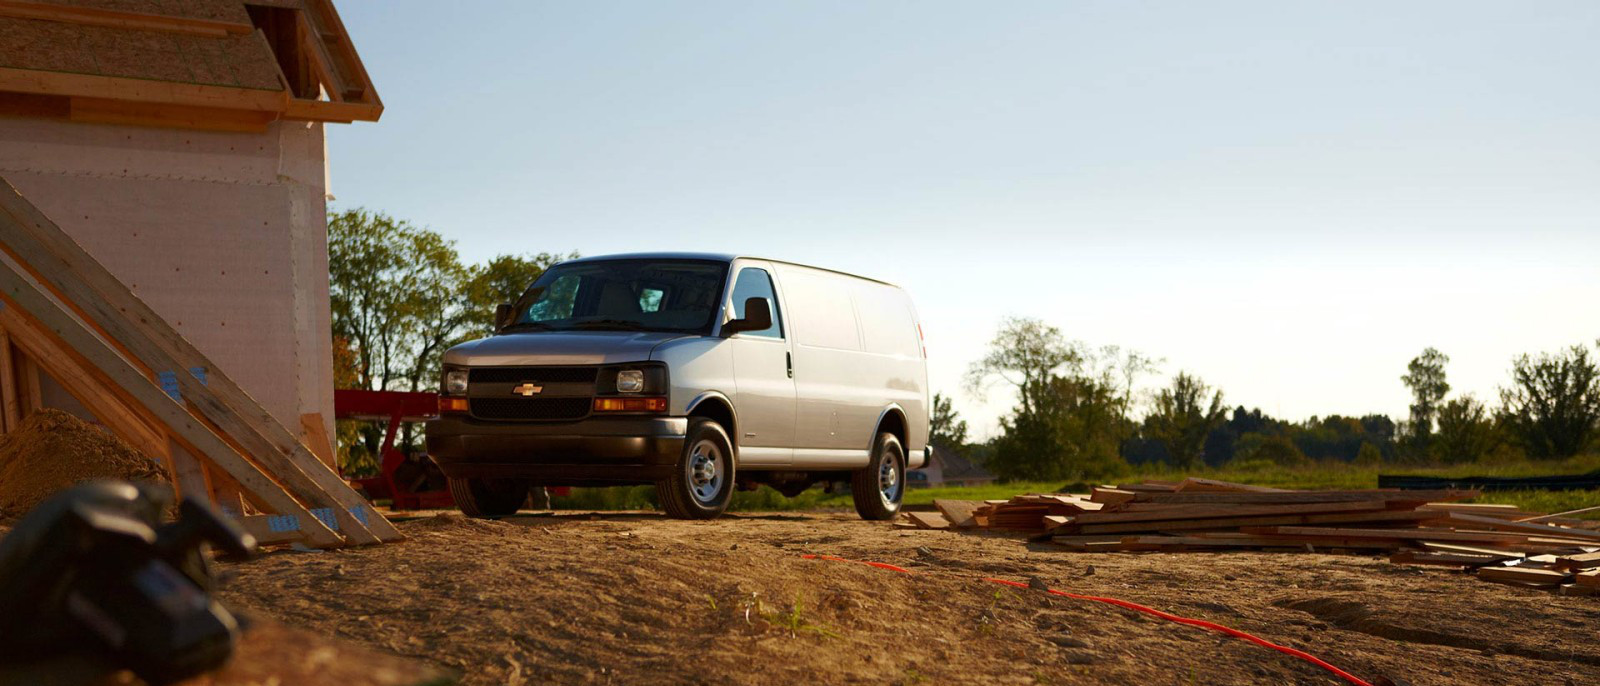 2015 Chevy Express Cargo Van in the field